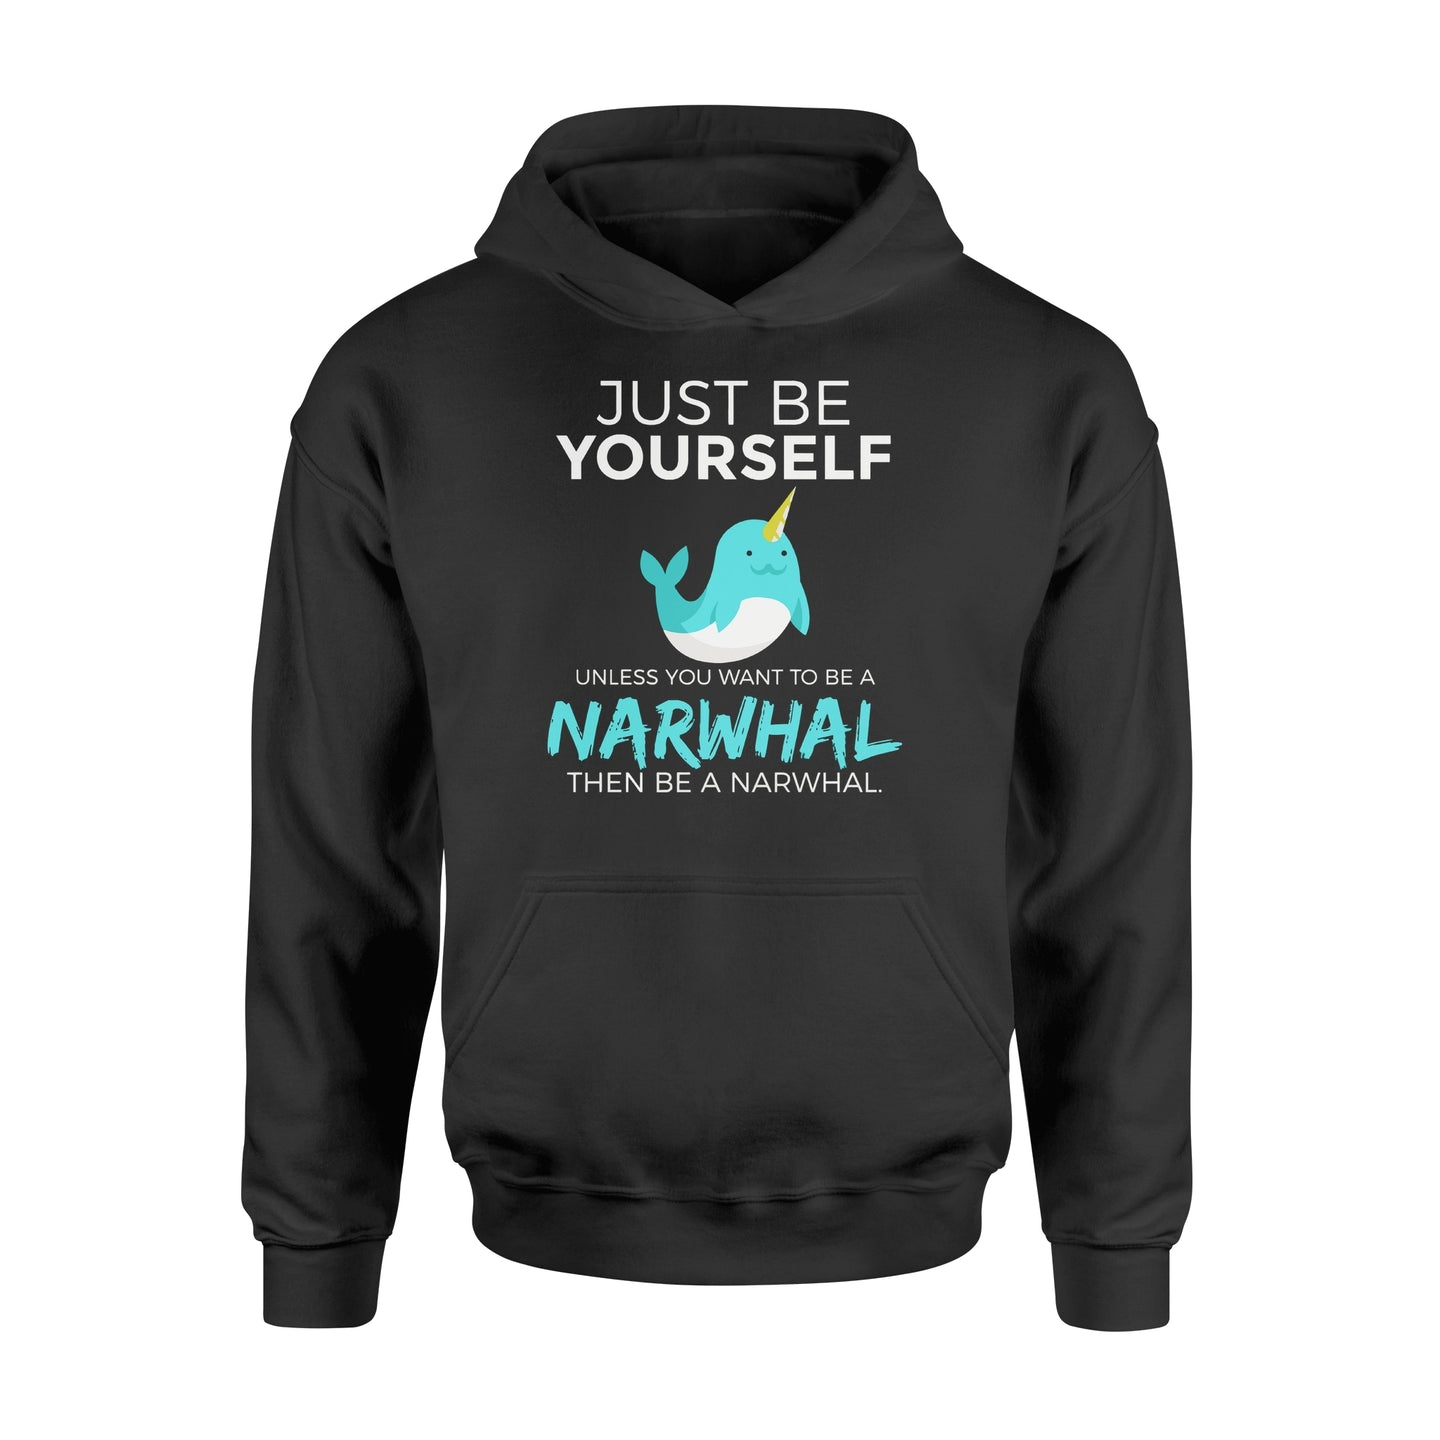 You Want To Be A Narwhal - Standard Hoodie Apparel S / Black